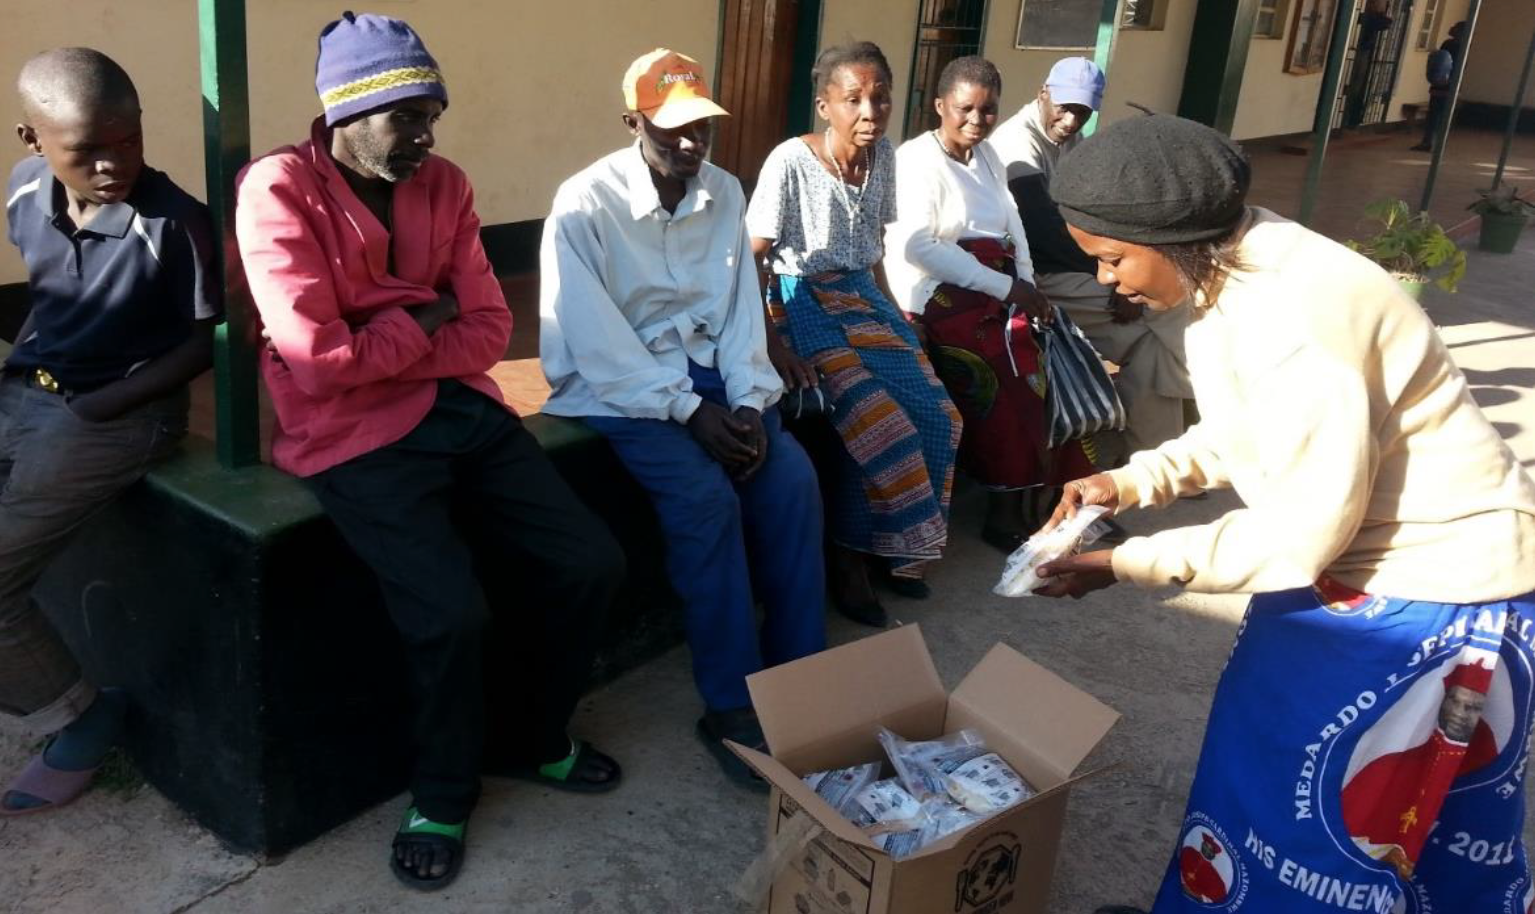 ZAMBIA: Salesian Missions Gifts-in-Kind Program Makes a Difference for Those in Need